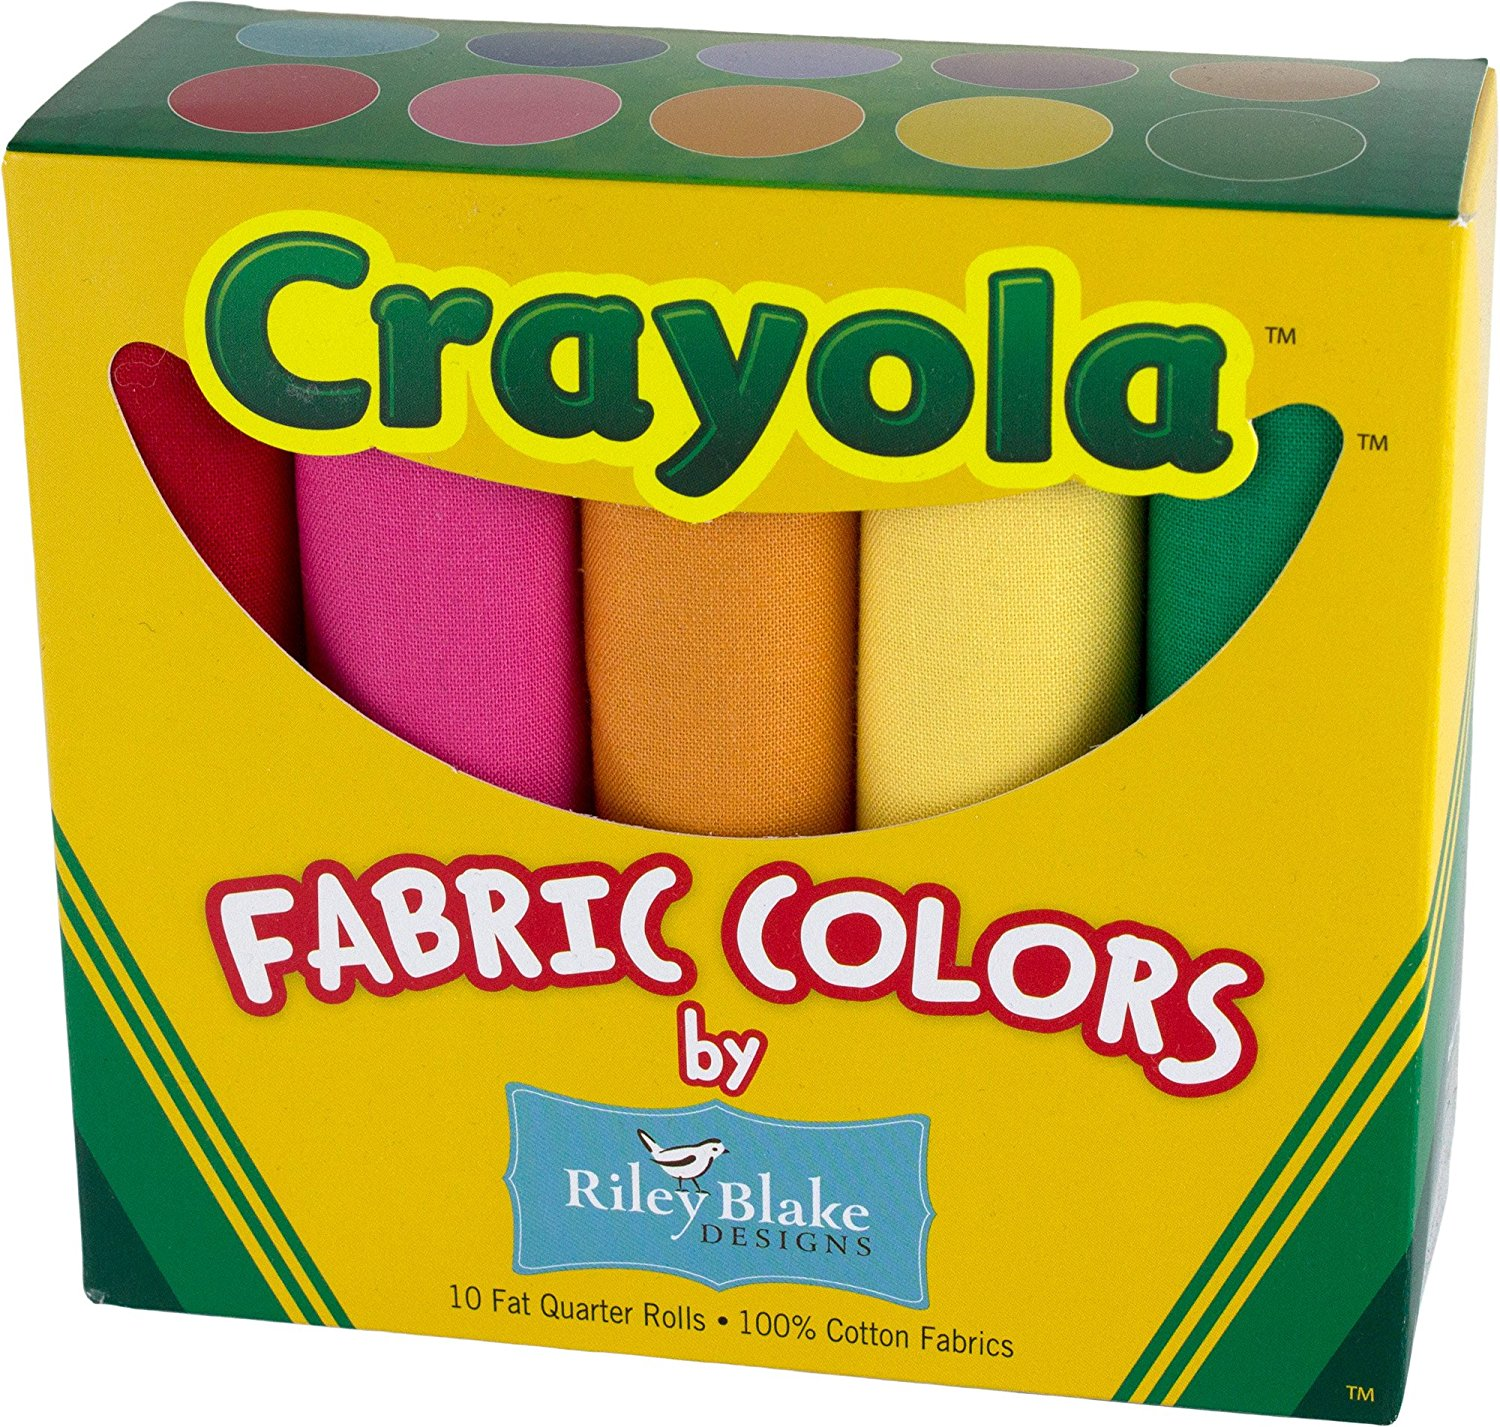 Crayola Fabric Colors Fat Quarters Box